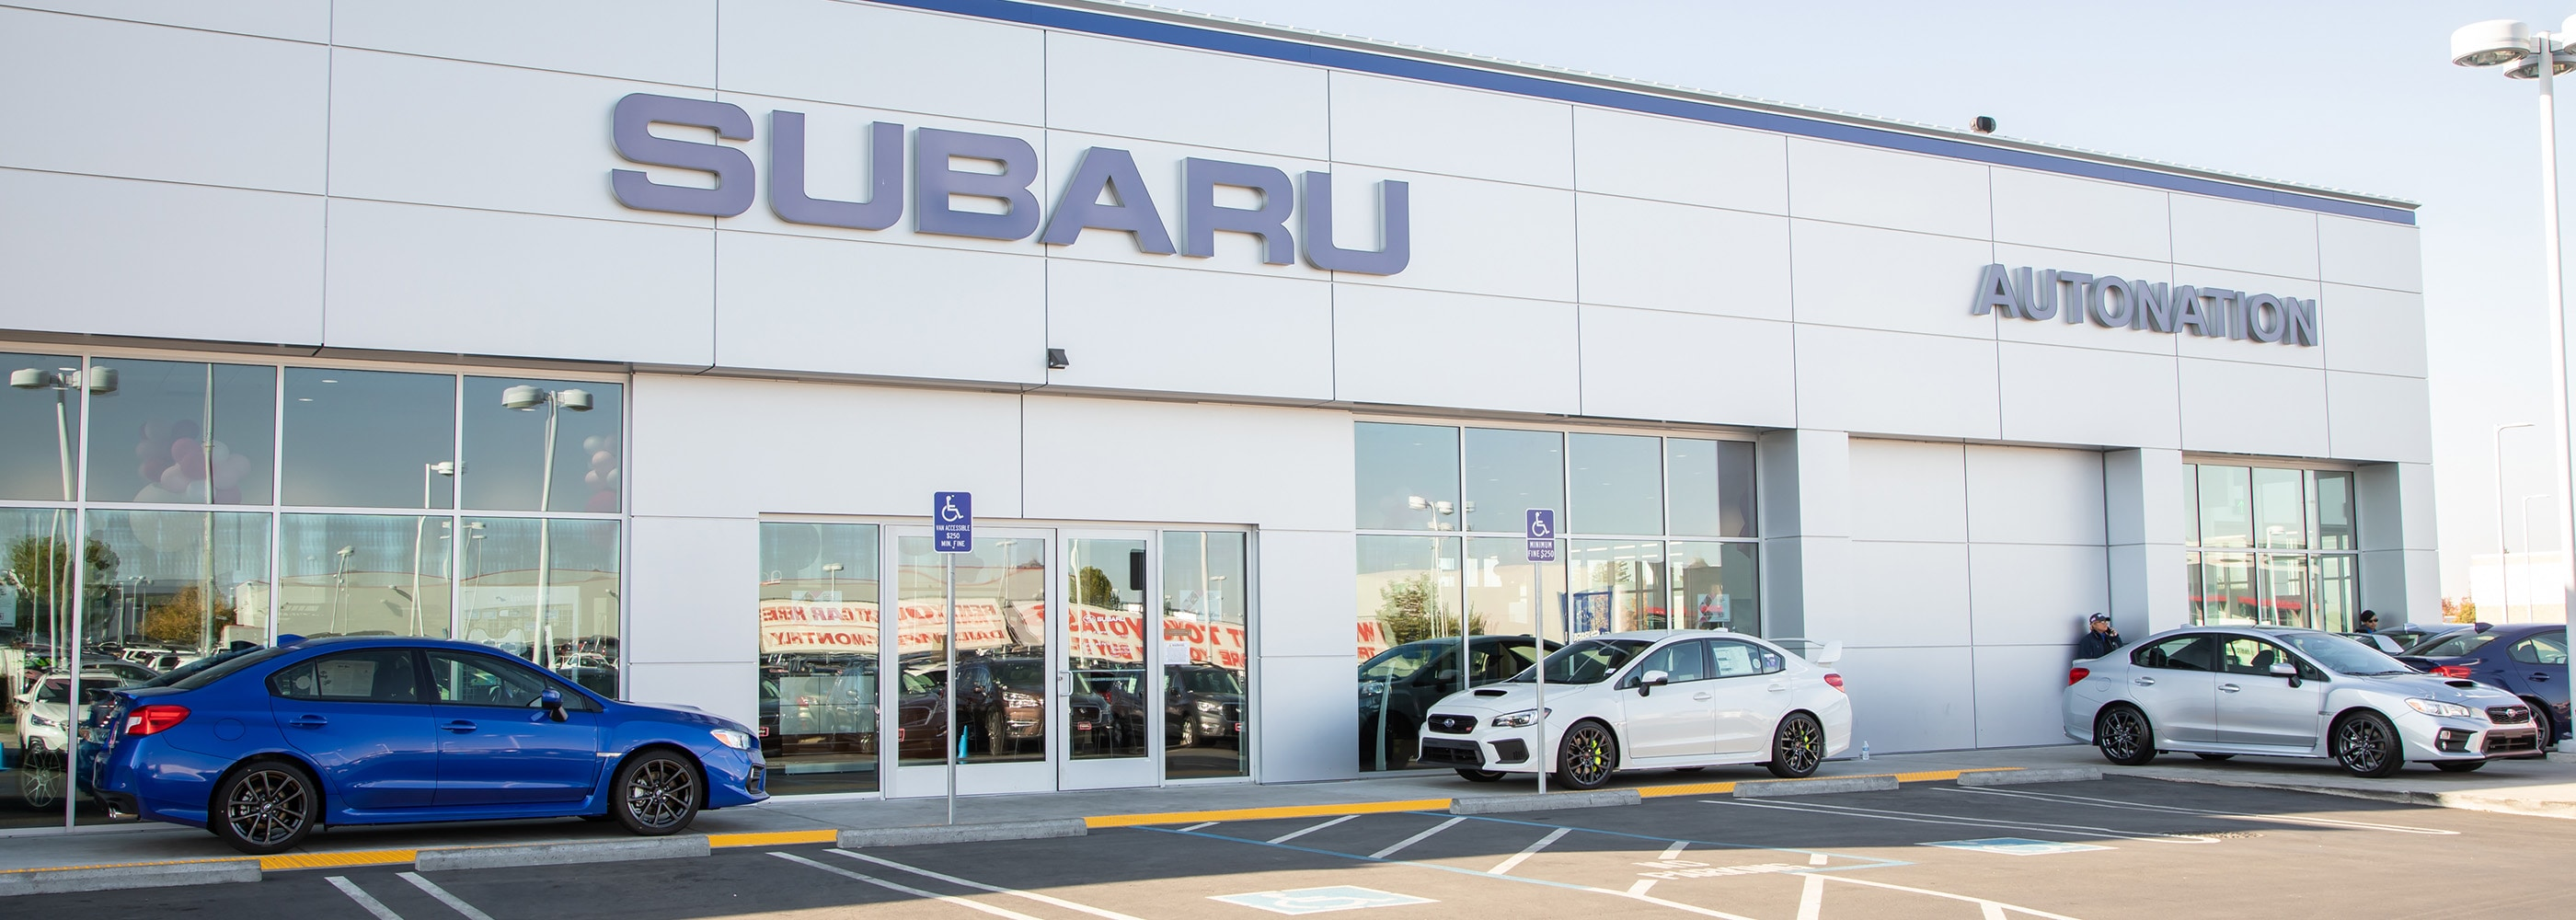 Exterior view of AutoNation Subaru Roseville